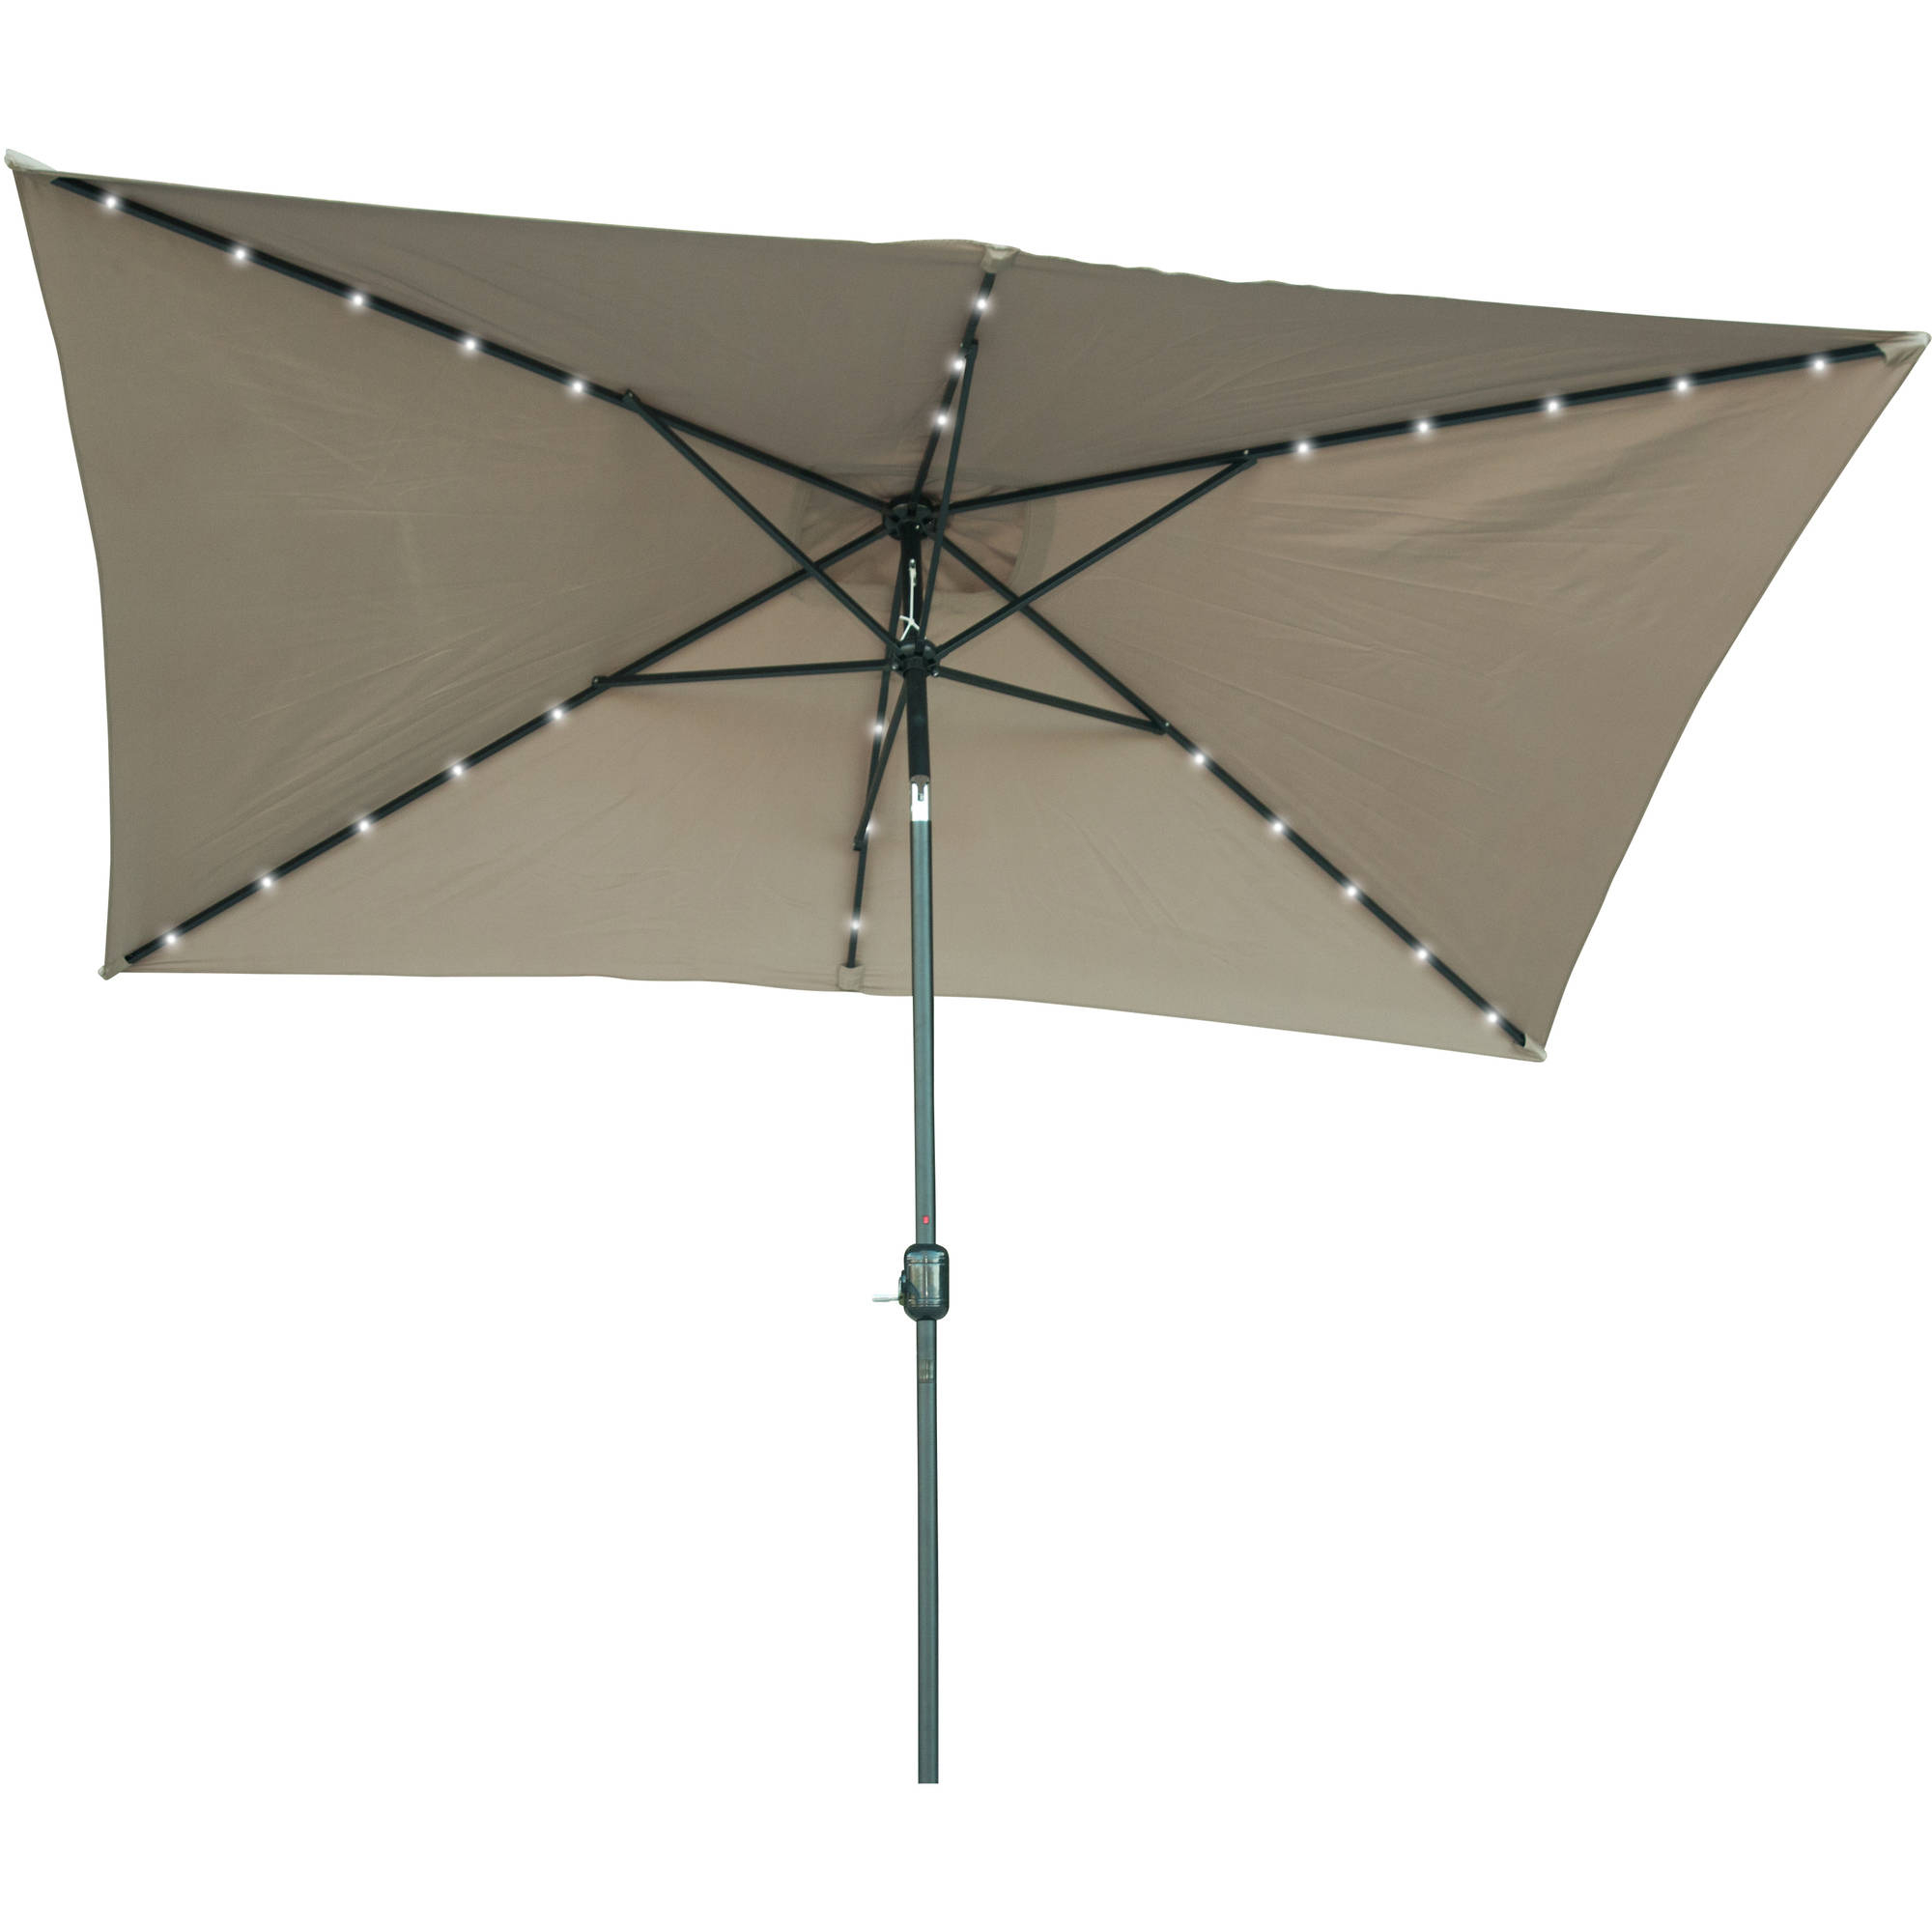 Solar Powered Led Patio Umbrellas With Regard To Fashionable Rectangular Solar Powered Led Lighted Patio Umbrella – 10' X  (View 19 of 20)